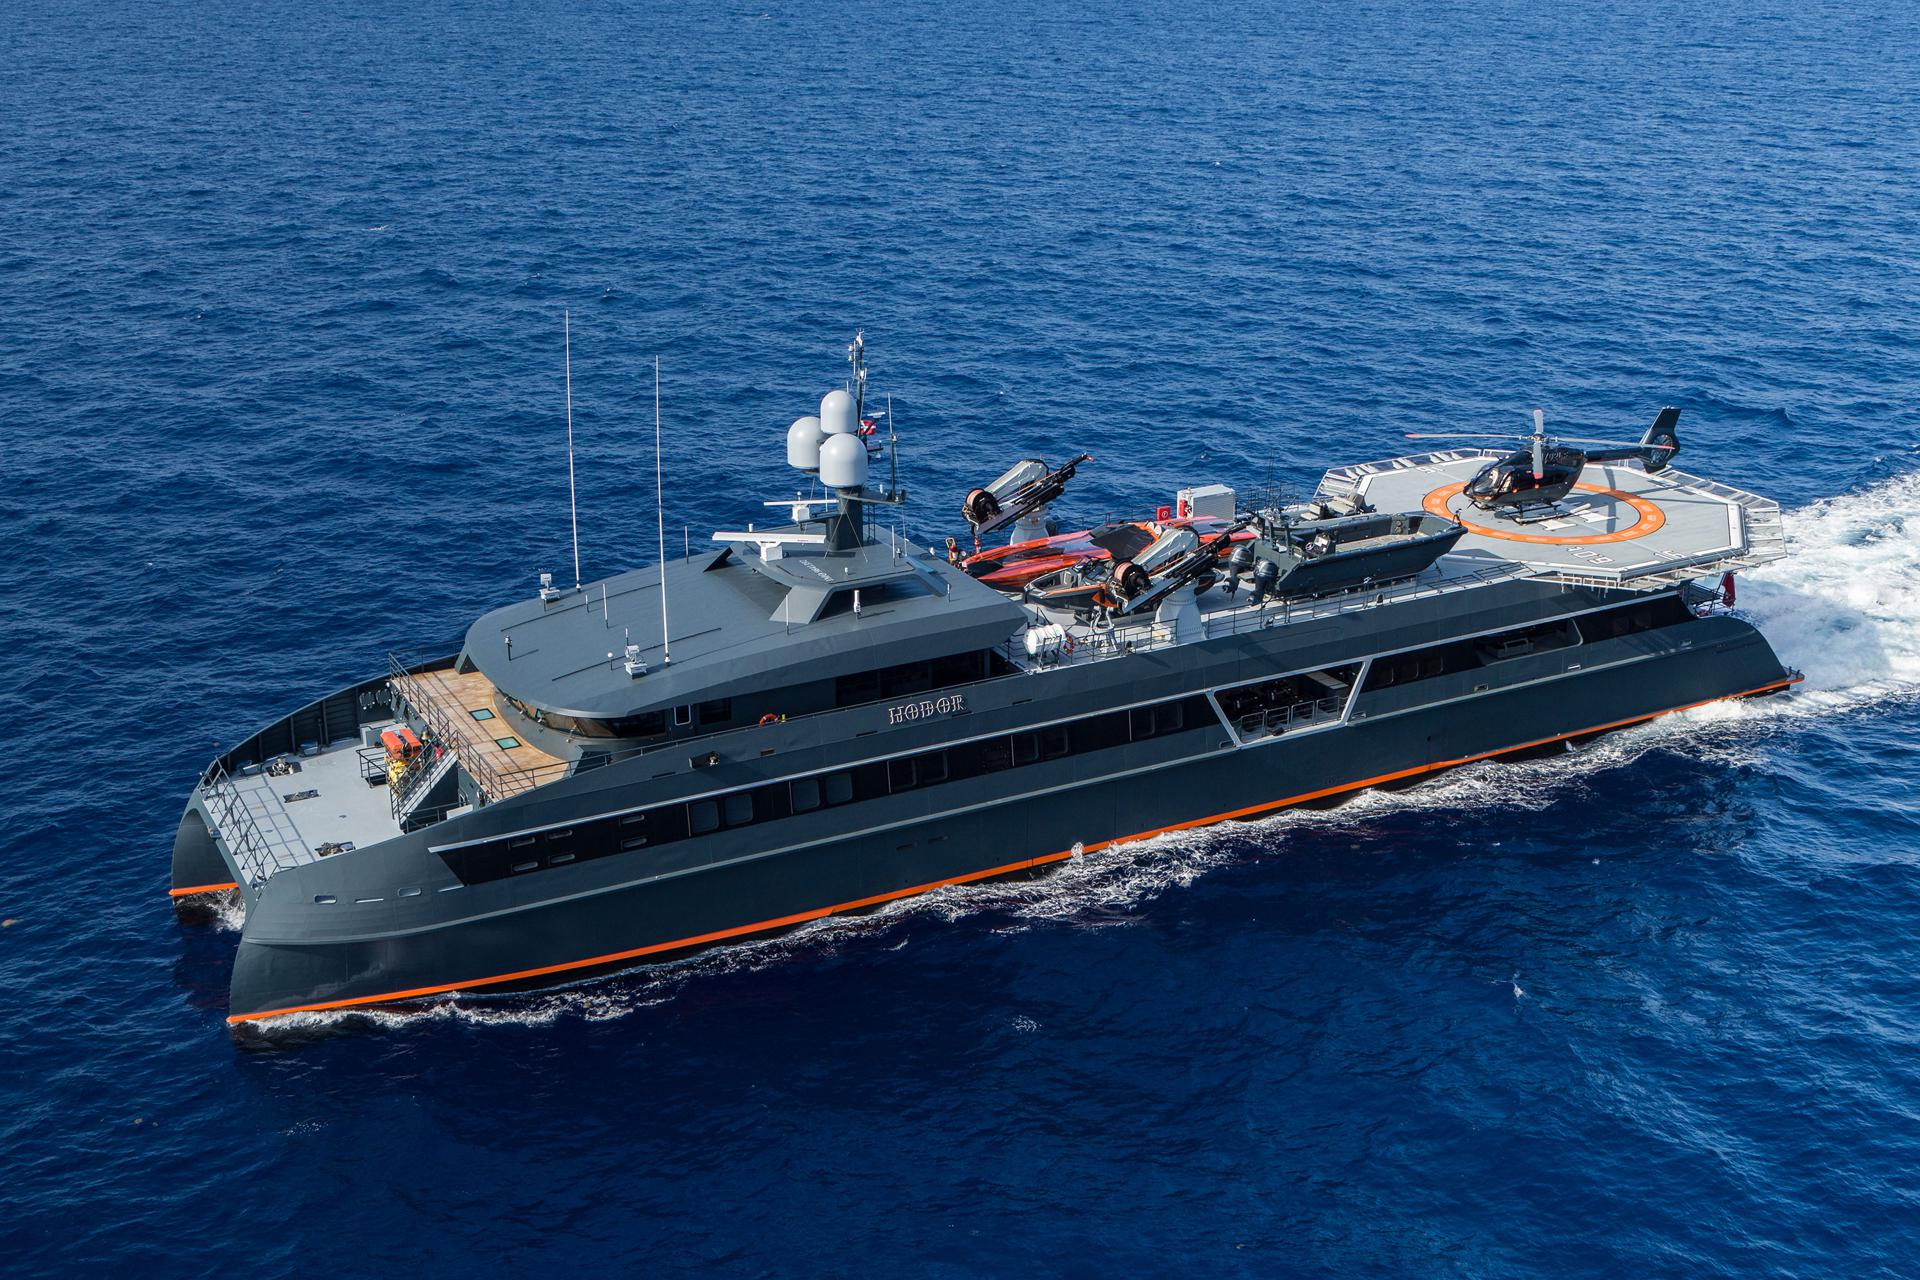 Superyacht Owners Escape For Open Waters With Hospital Rooms And Private Nurses